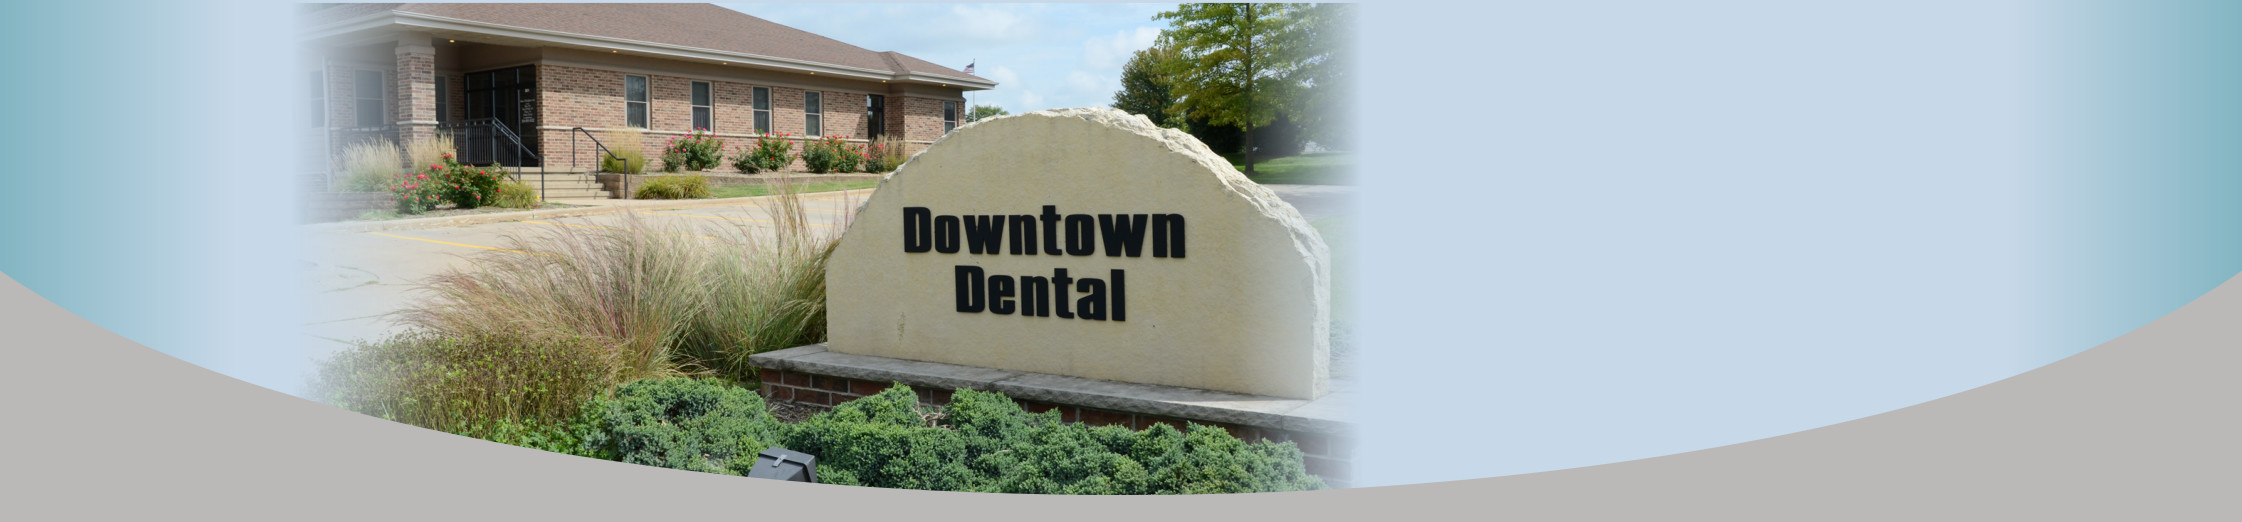 downtown dental inc, general dentistry